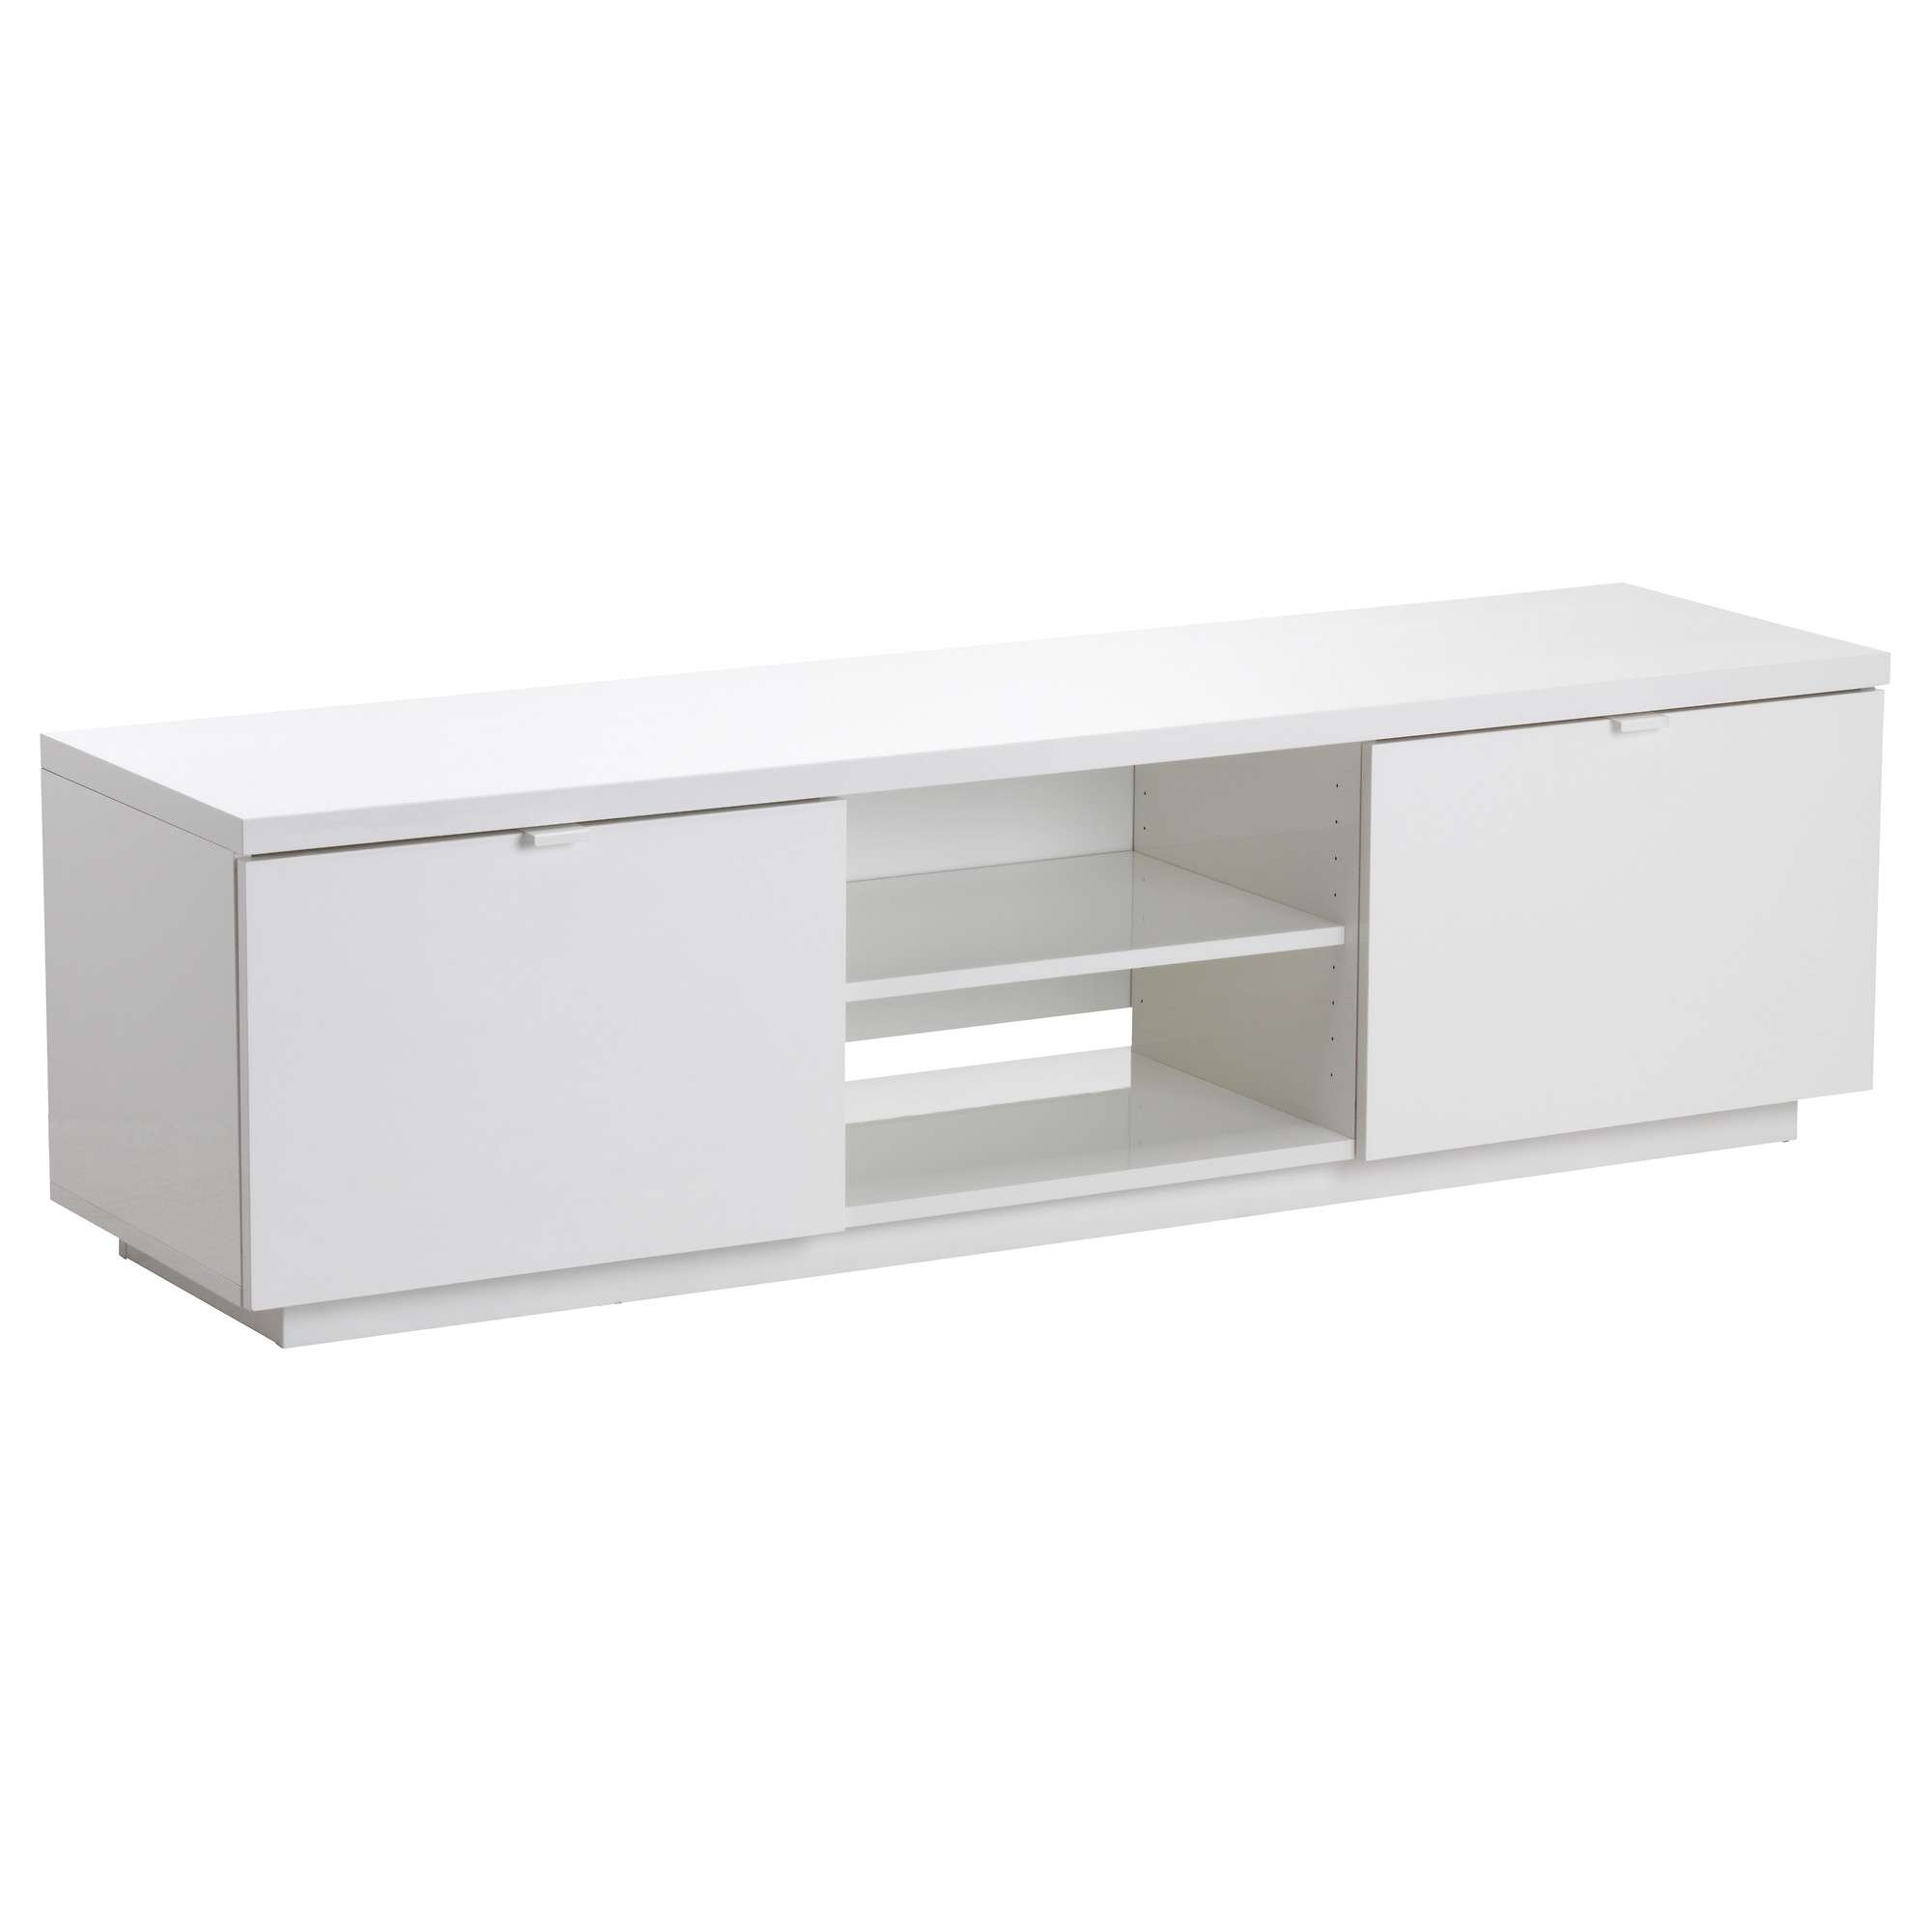 Byås Tv Bench High Gloss White 160X42X45 Cm – Ikea In Gloss White Tv Stands (View 3 of 15)